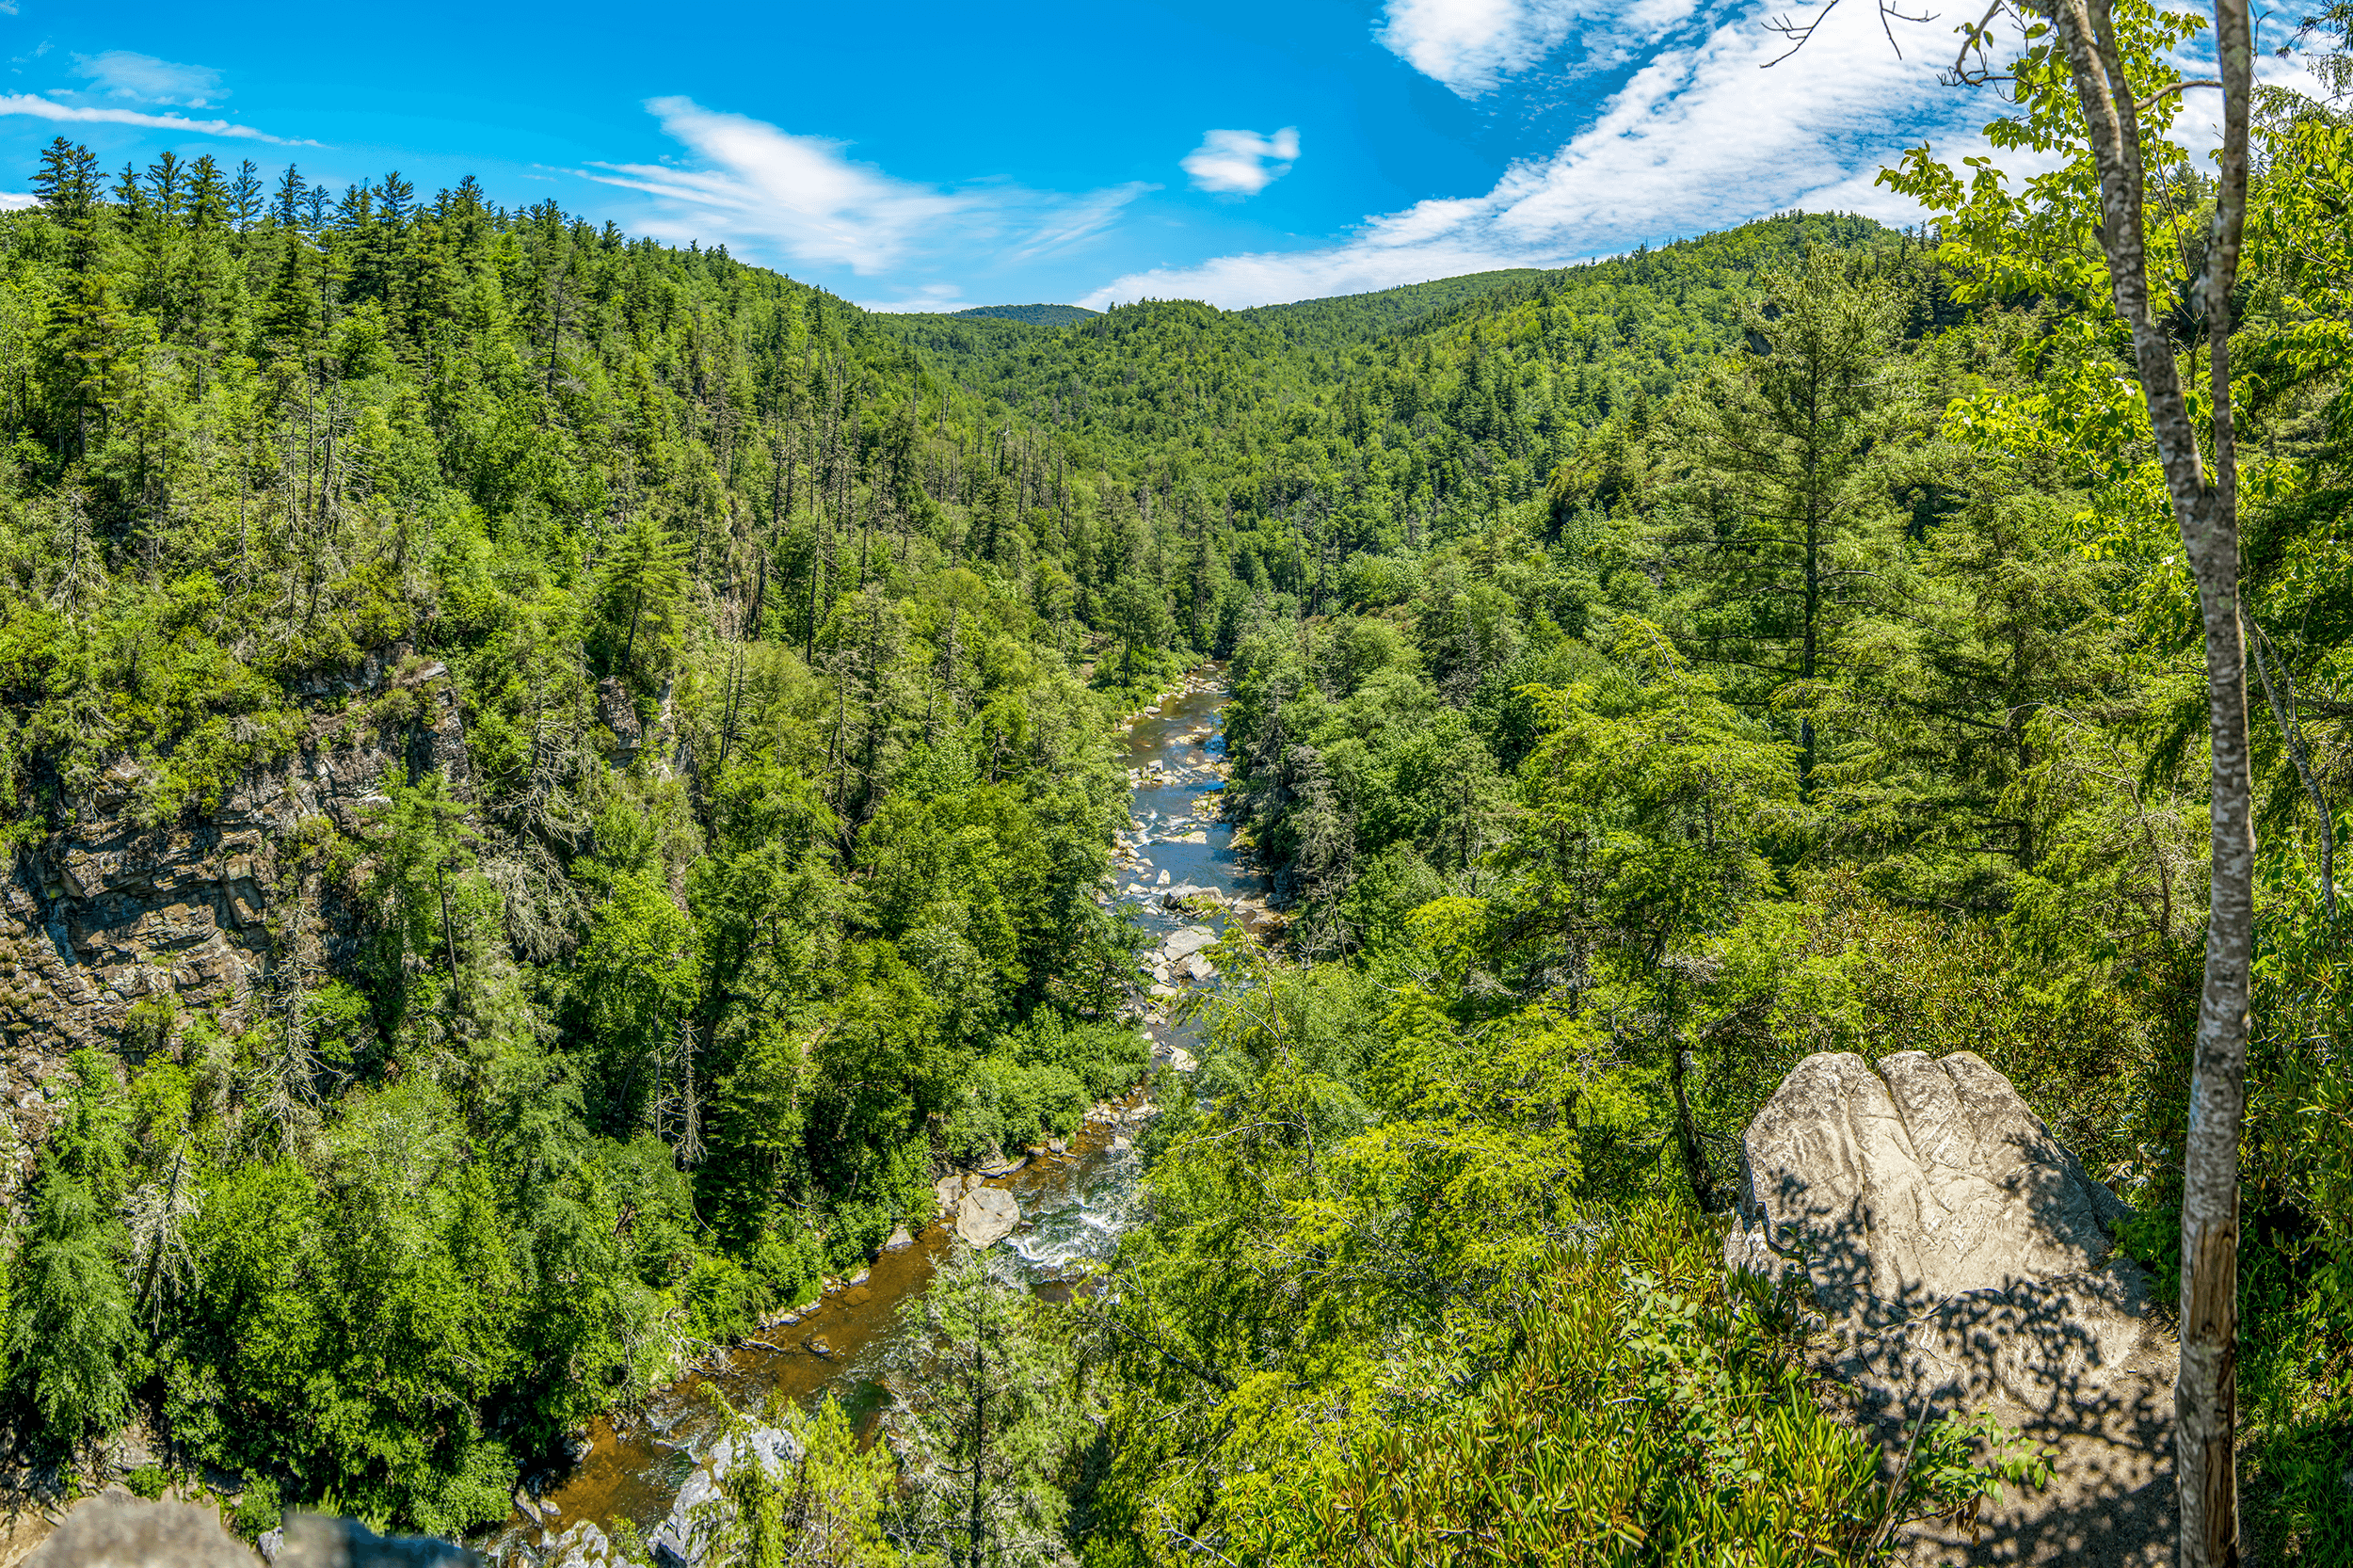 The second platform at the  Chimney View Overlook  allows views of the falls from a slightly different angle and stunning views of the  Linville River  cutting its way through the  Linville Gorge Wilderness Area .